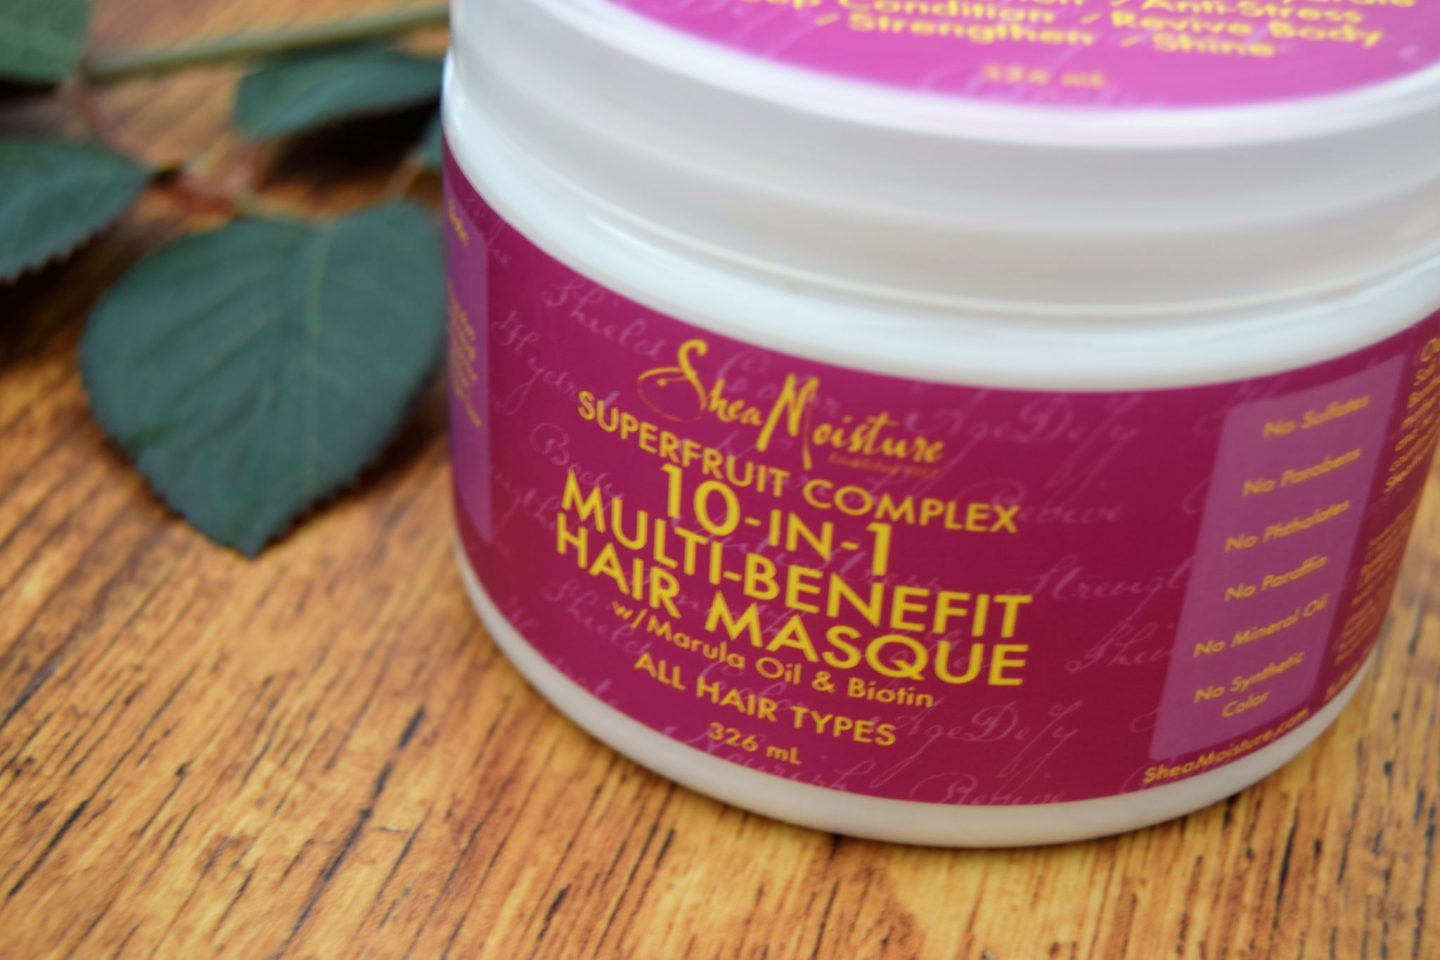 Shea Moisture Superfruit Mask 10 in 1